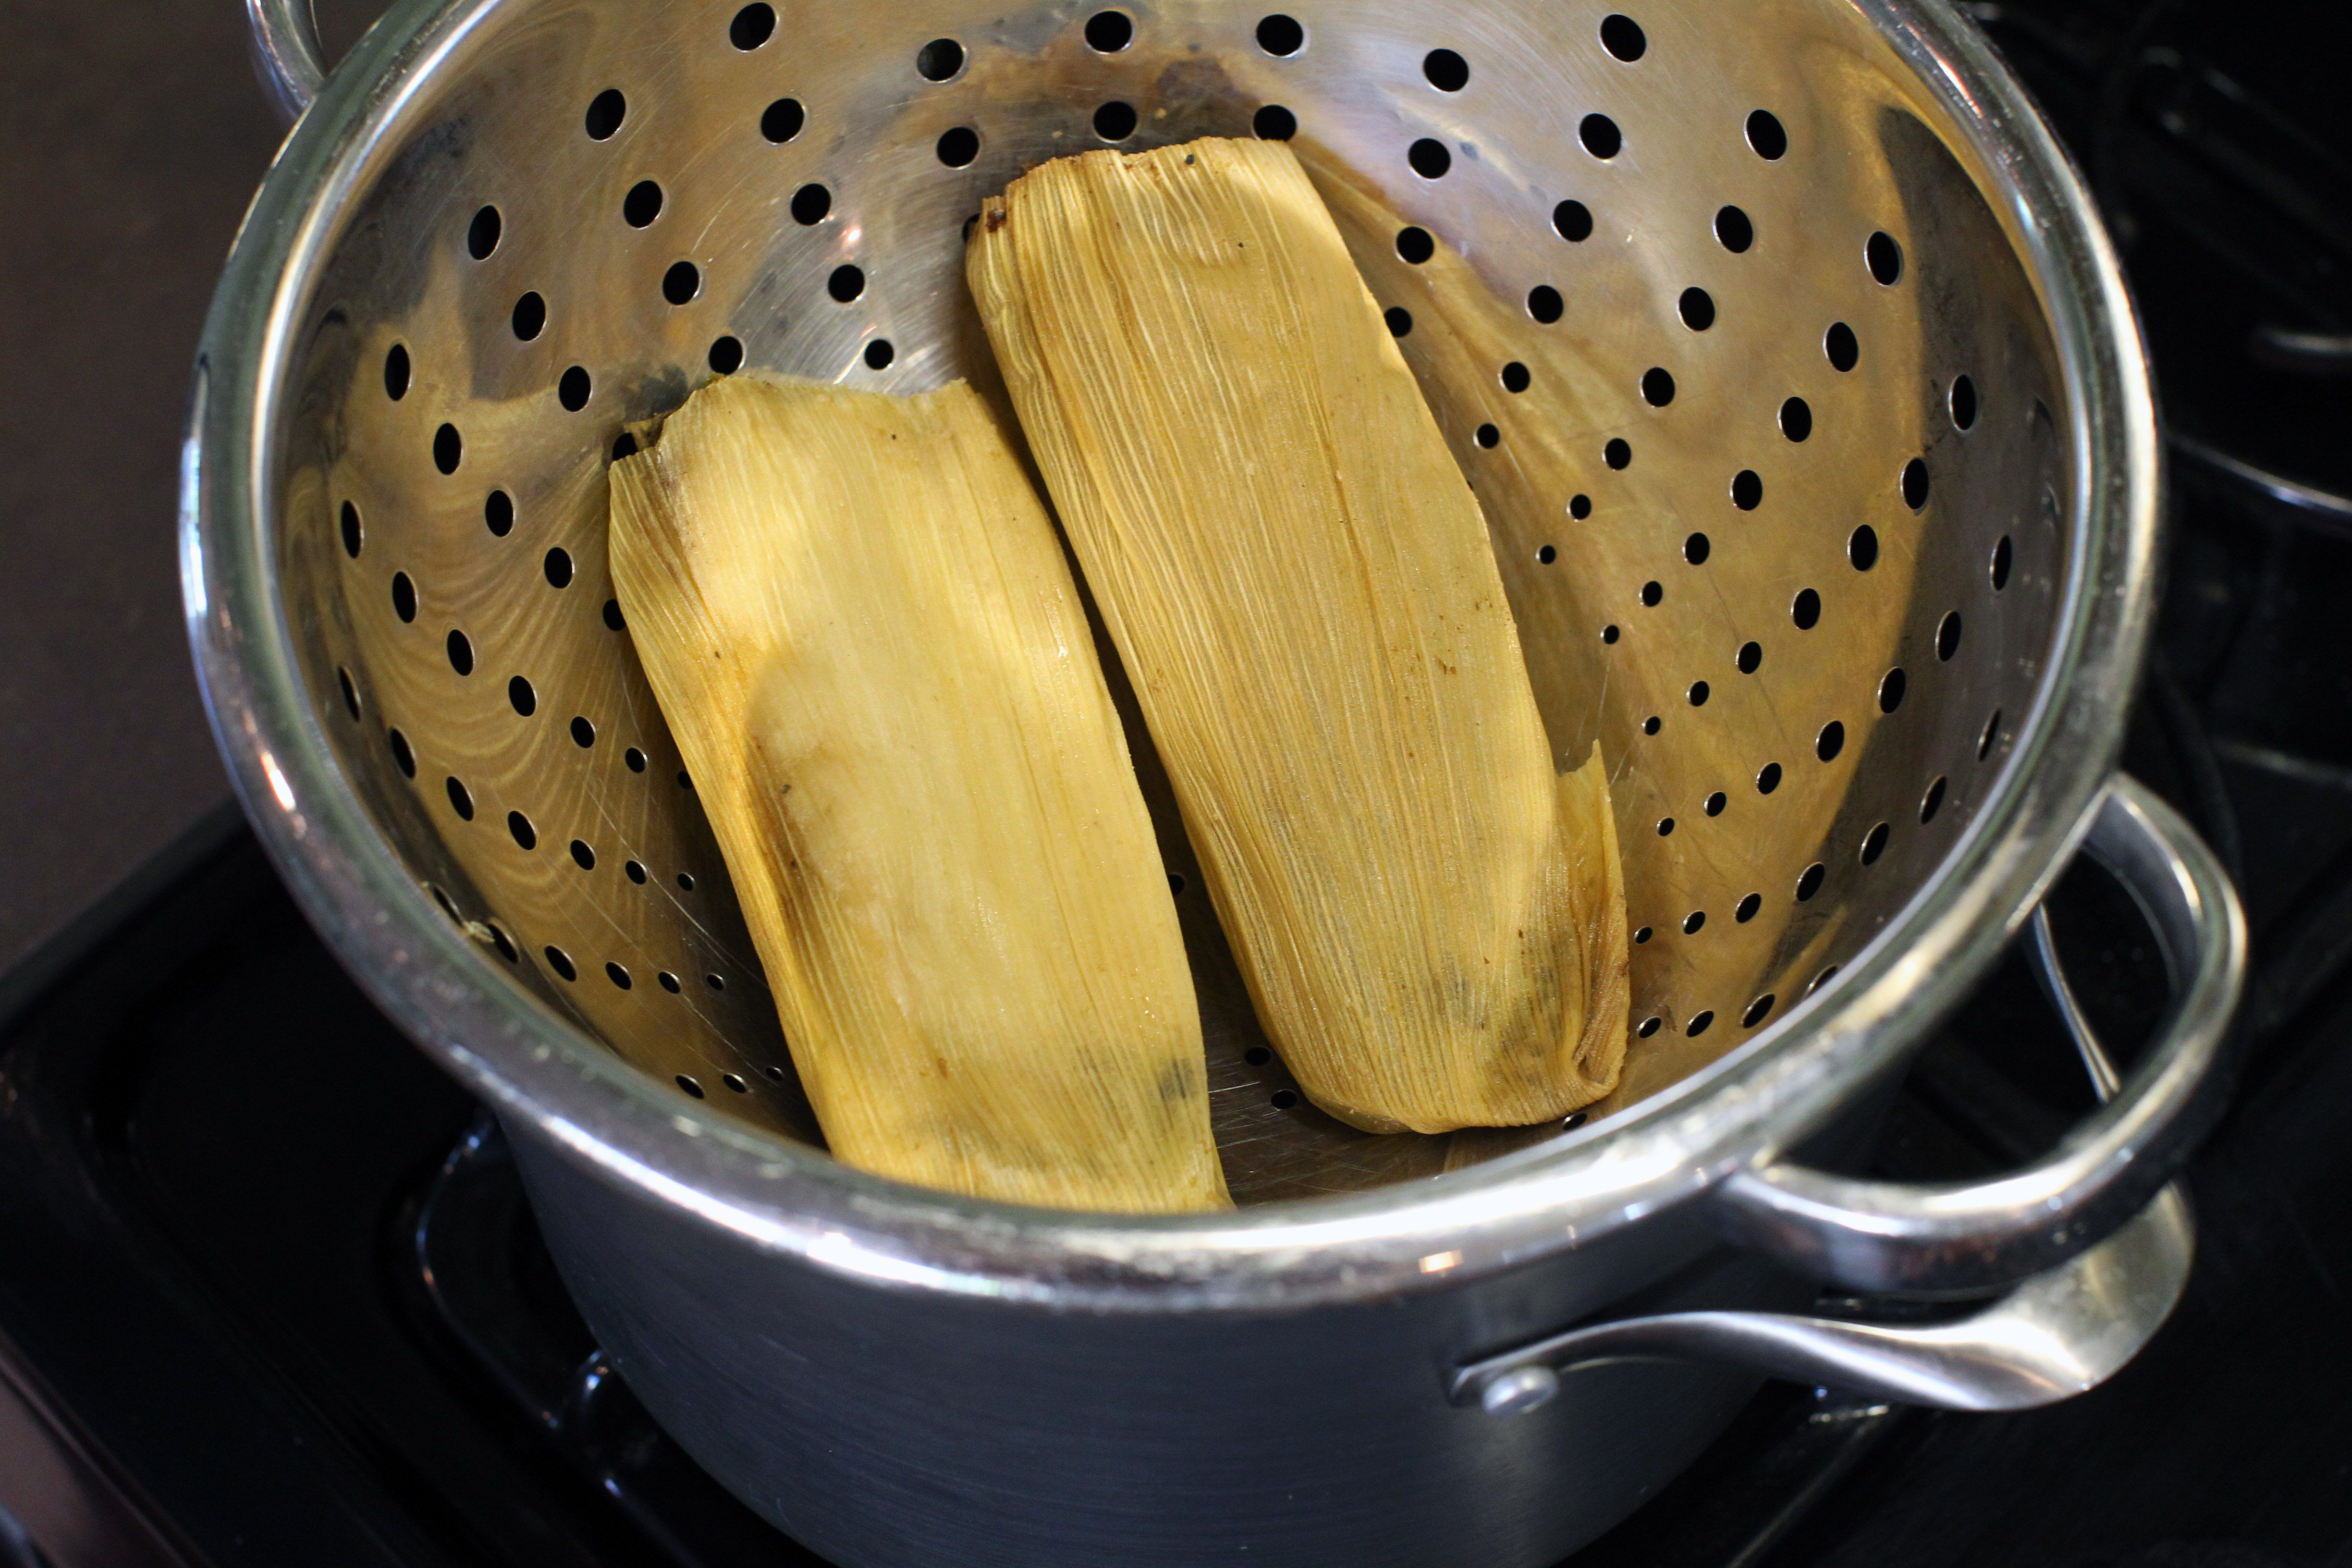 How To Steam A Tamale Without A Steamer Basket Tamales How To Cook Tamales Steaming Tamales